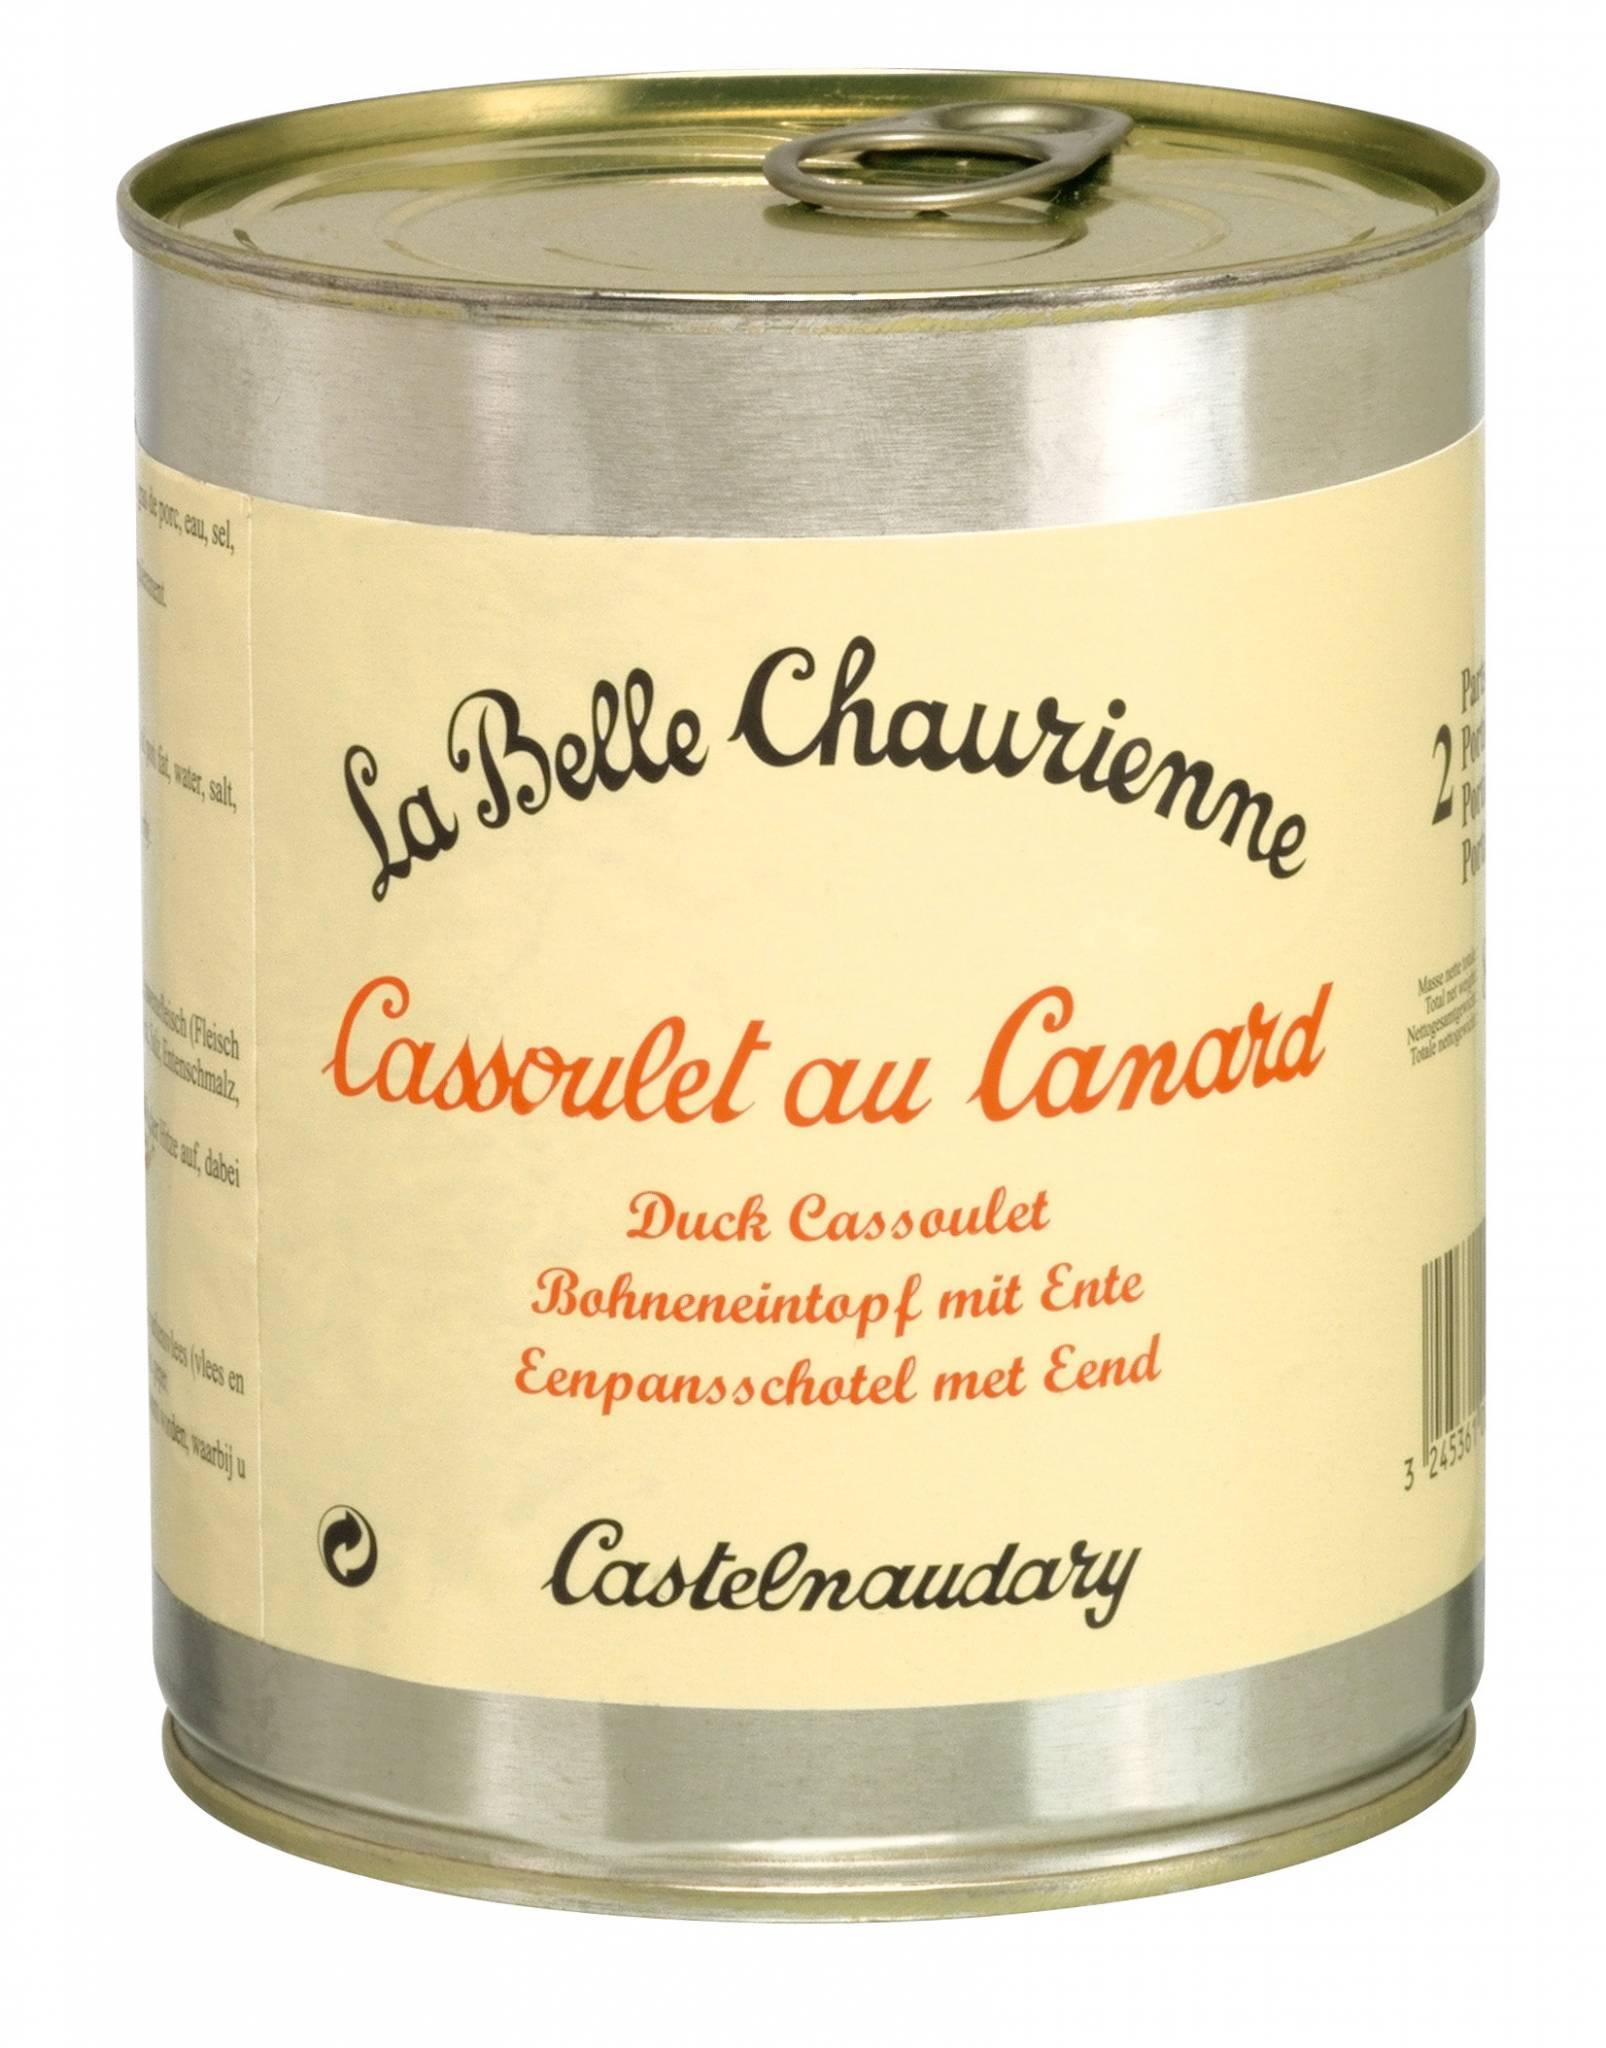 La Belle Chaurienne Duck Cassoulet French Gourmet